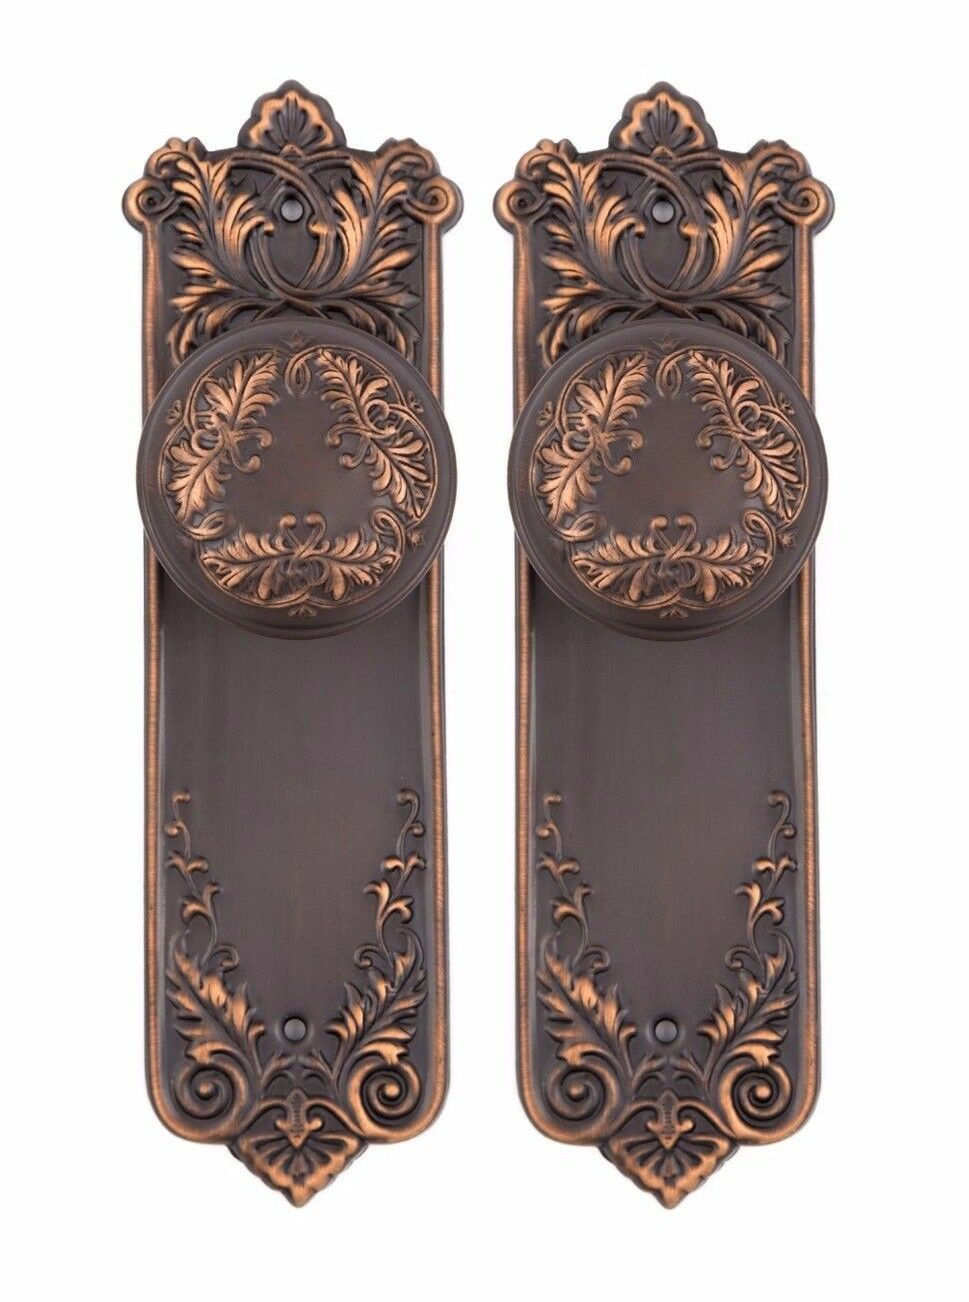 Lorraine French Doorknob Sets For Old Or New Doors